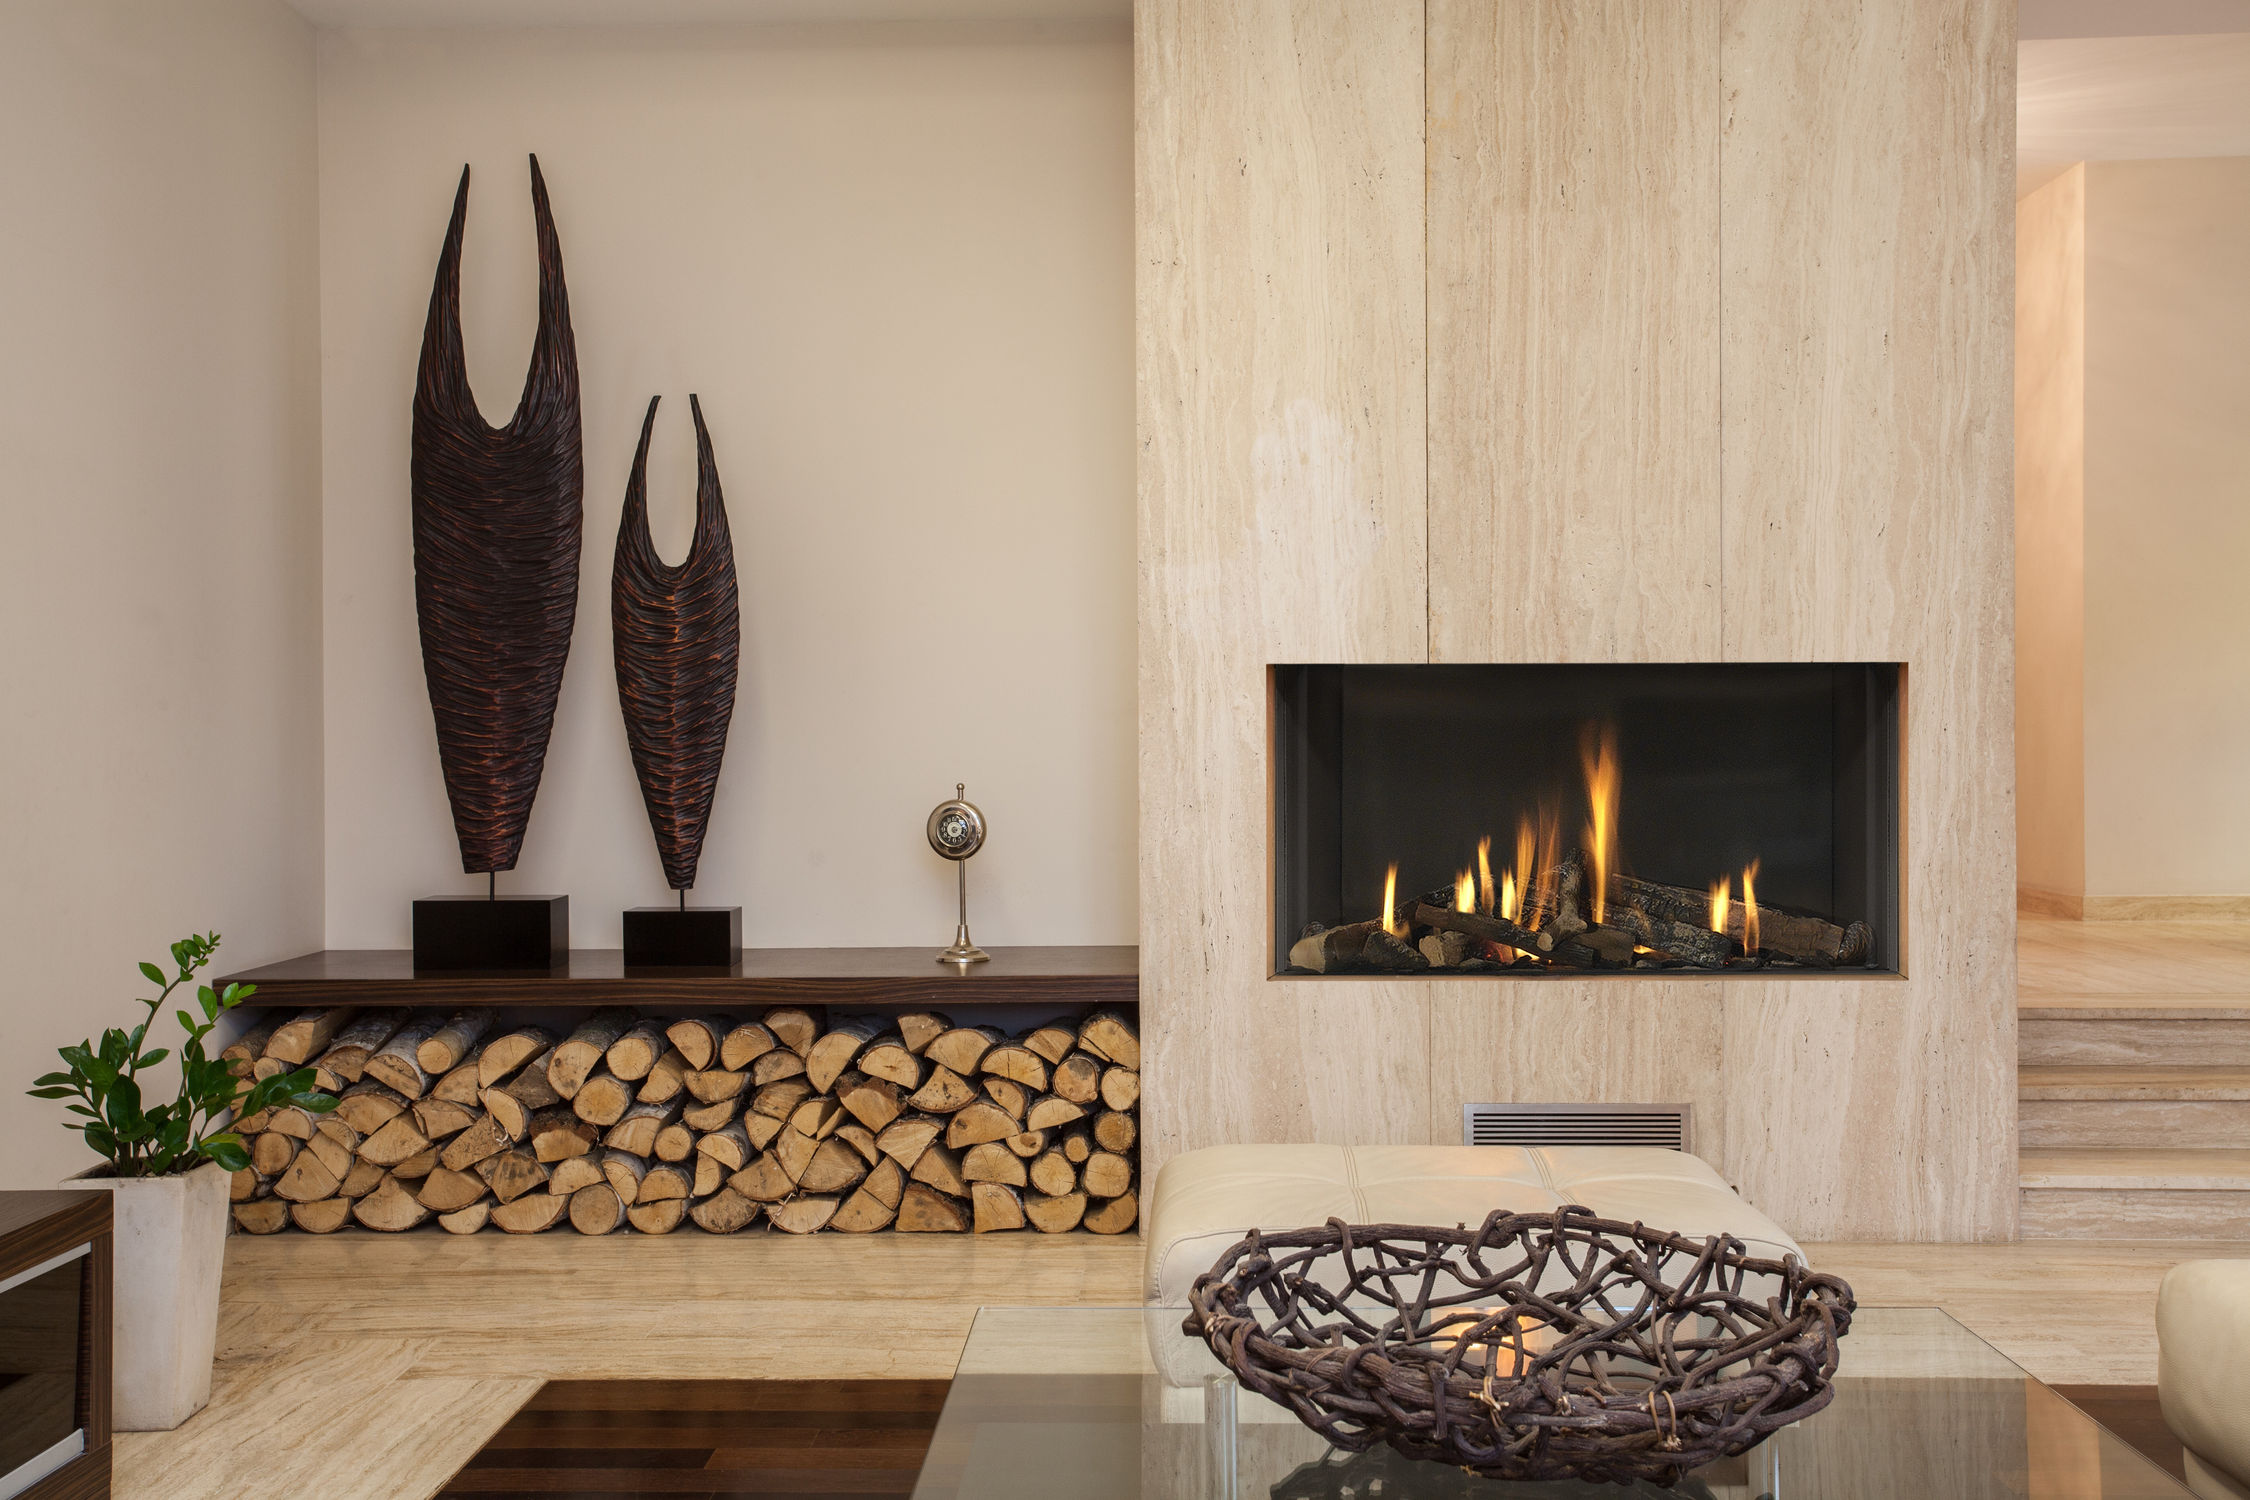 10 wood paneled column - Modern Fireplace Design Ideas